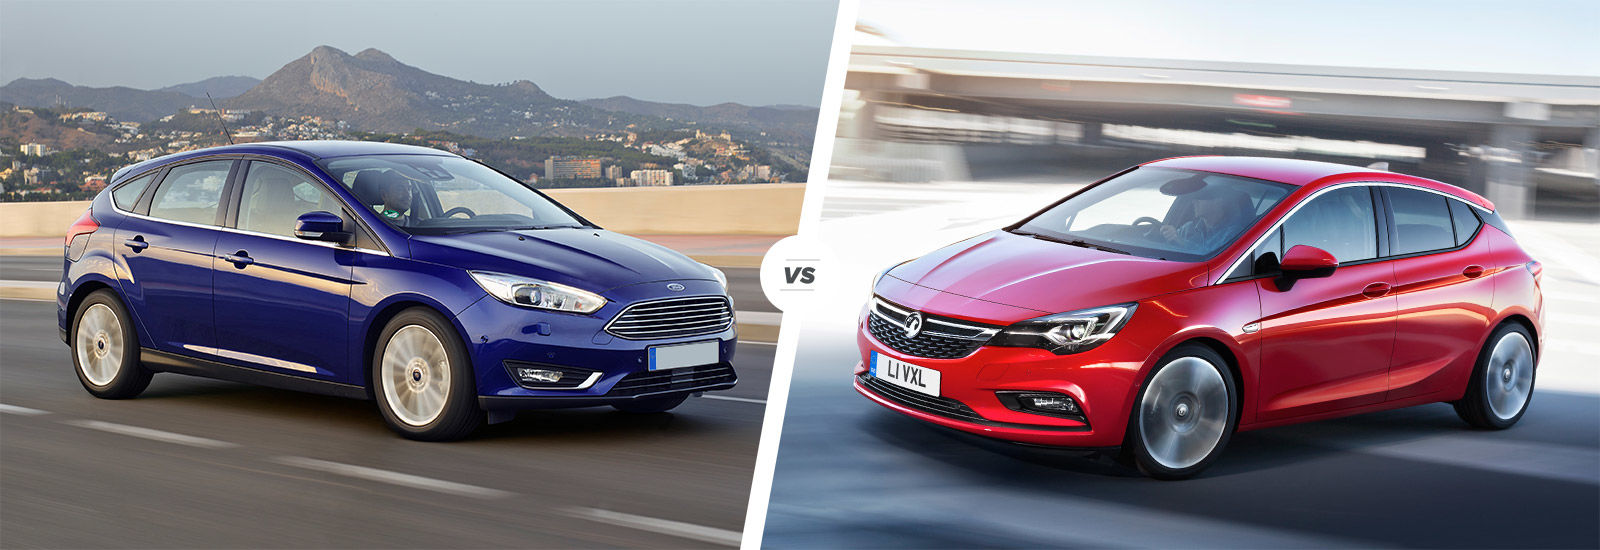 Ford focus vs vauxhall astra